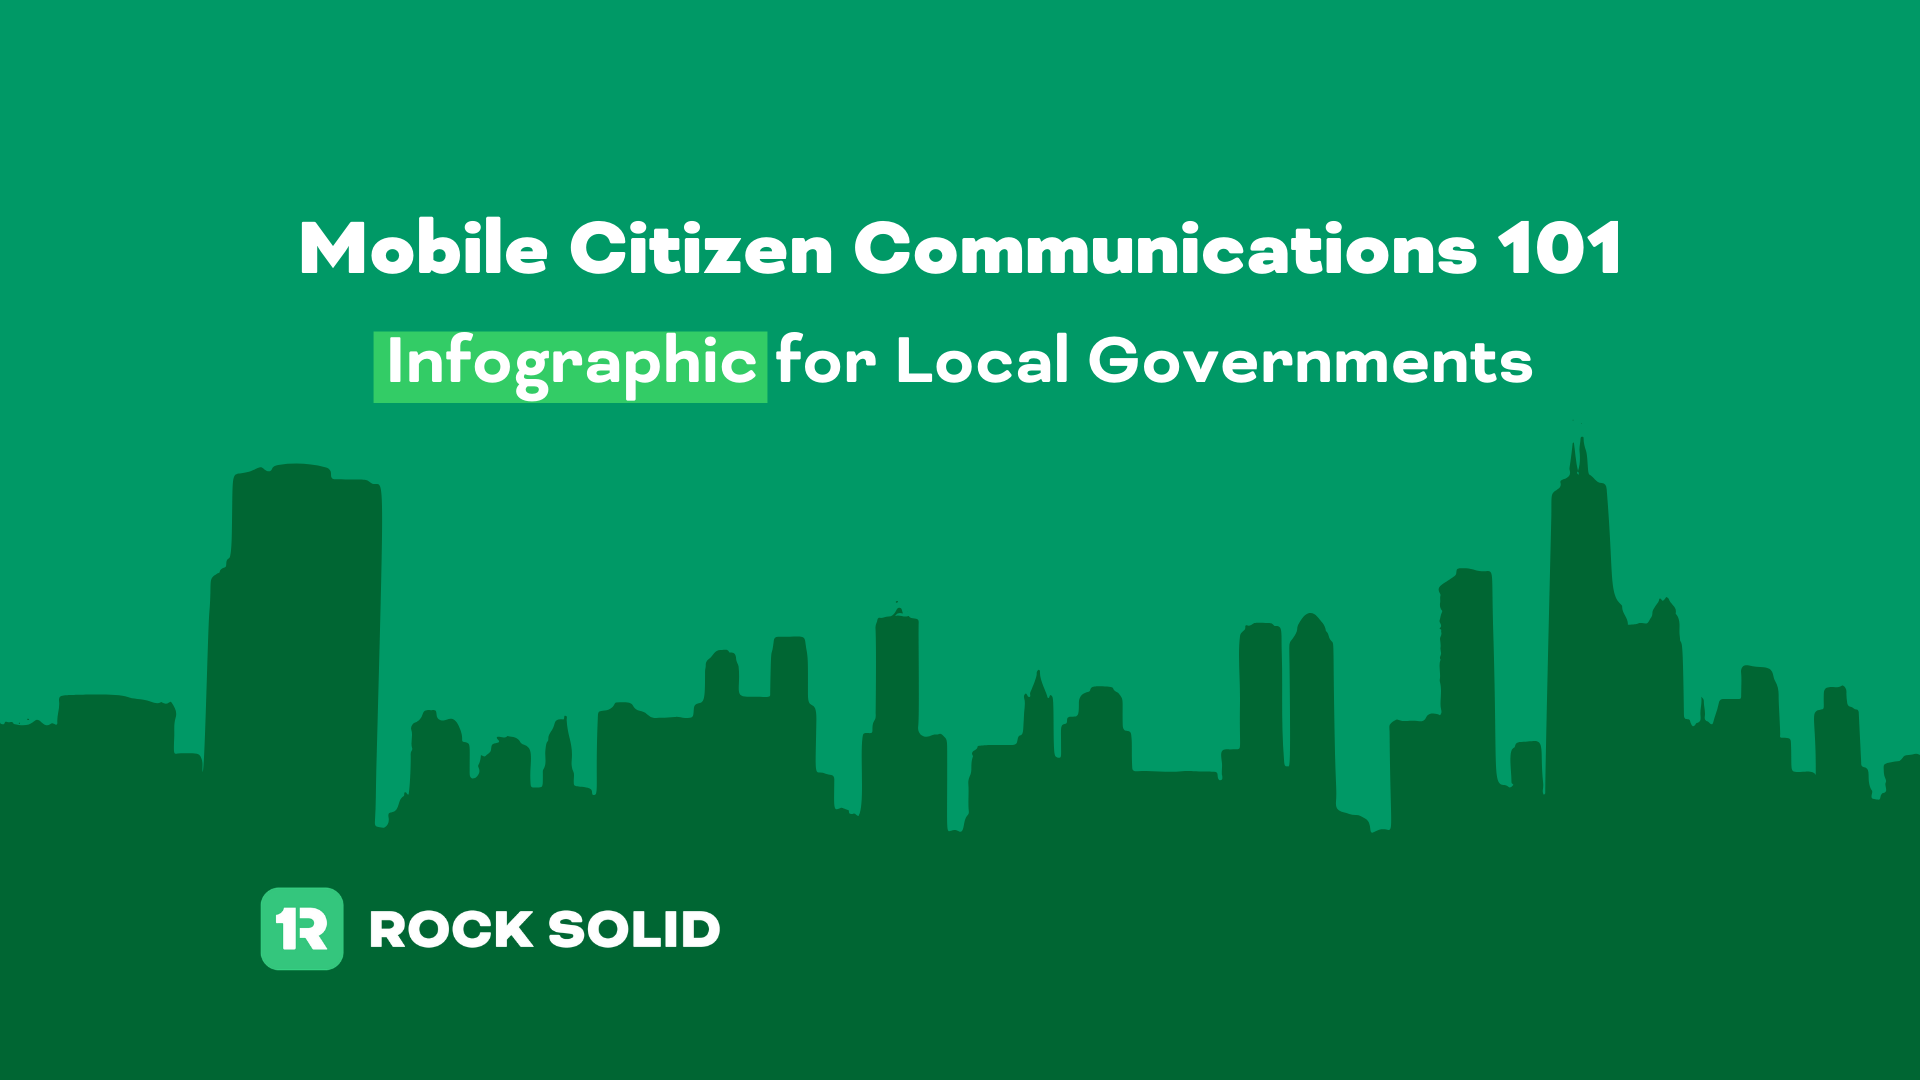 introduction tile for blog post on mobile citizen communications 101 for local governments | rocksolid.com